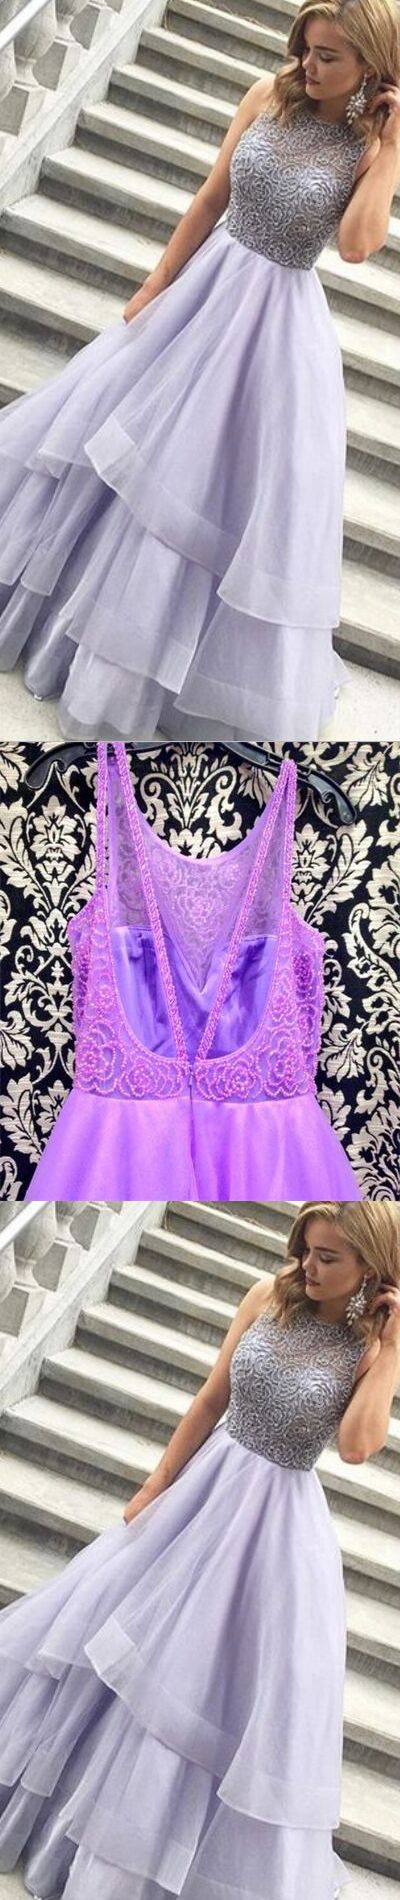 prom dress,prom dresses,prom gowns,evening dress,evening dresses,evening gowns,party dresses,party gowns,graduation dresses,backless prom dresses,handmade prom dresses,long prom dresses,high low prom dresses,party dresses,women dresses,cute dresses,sweet 16 dresses,modest prom dresses,sparkly prom dresses,simple prom dresses,cheap prom dresses,plus size prom dresses,lavender ptom dresses